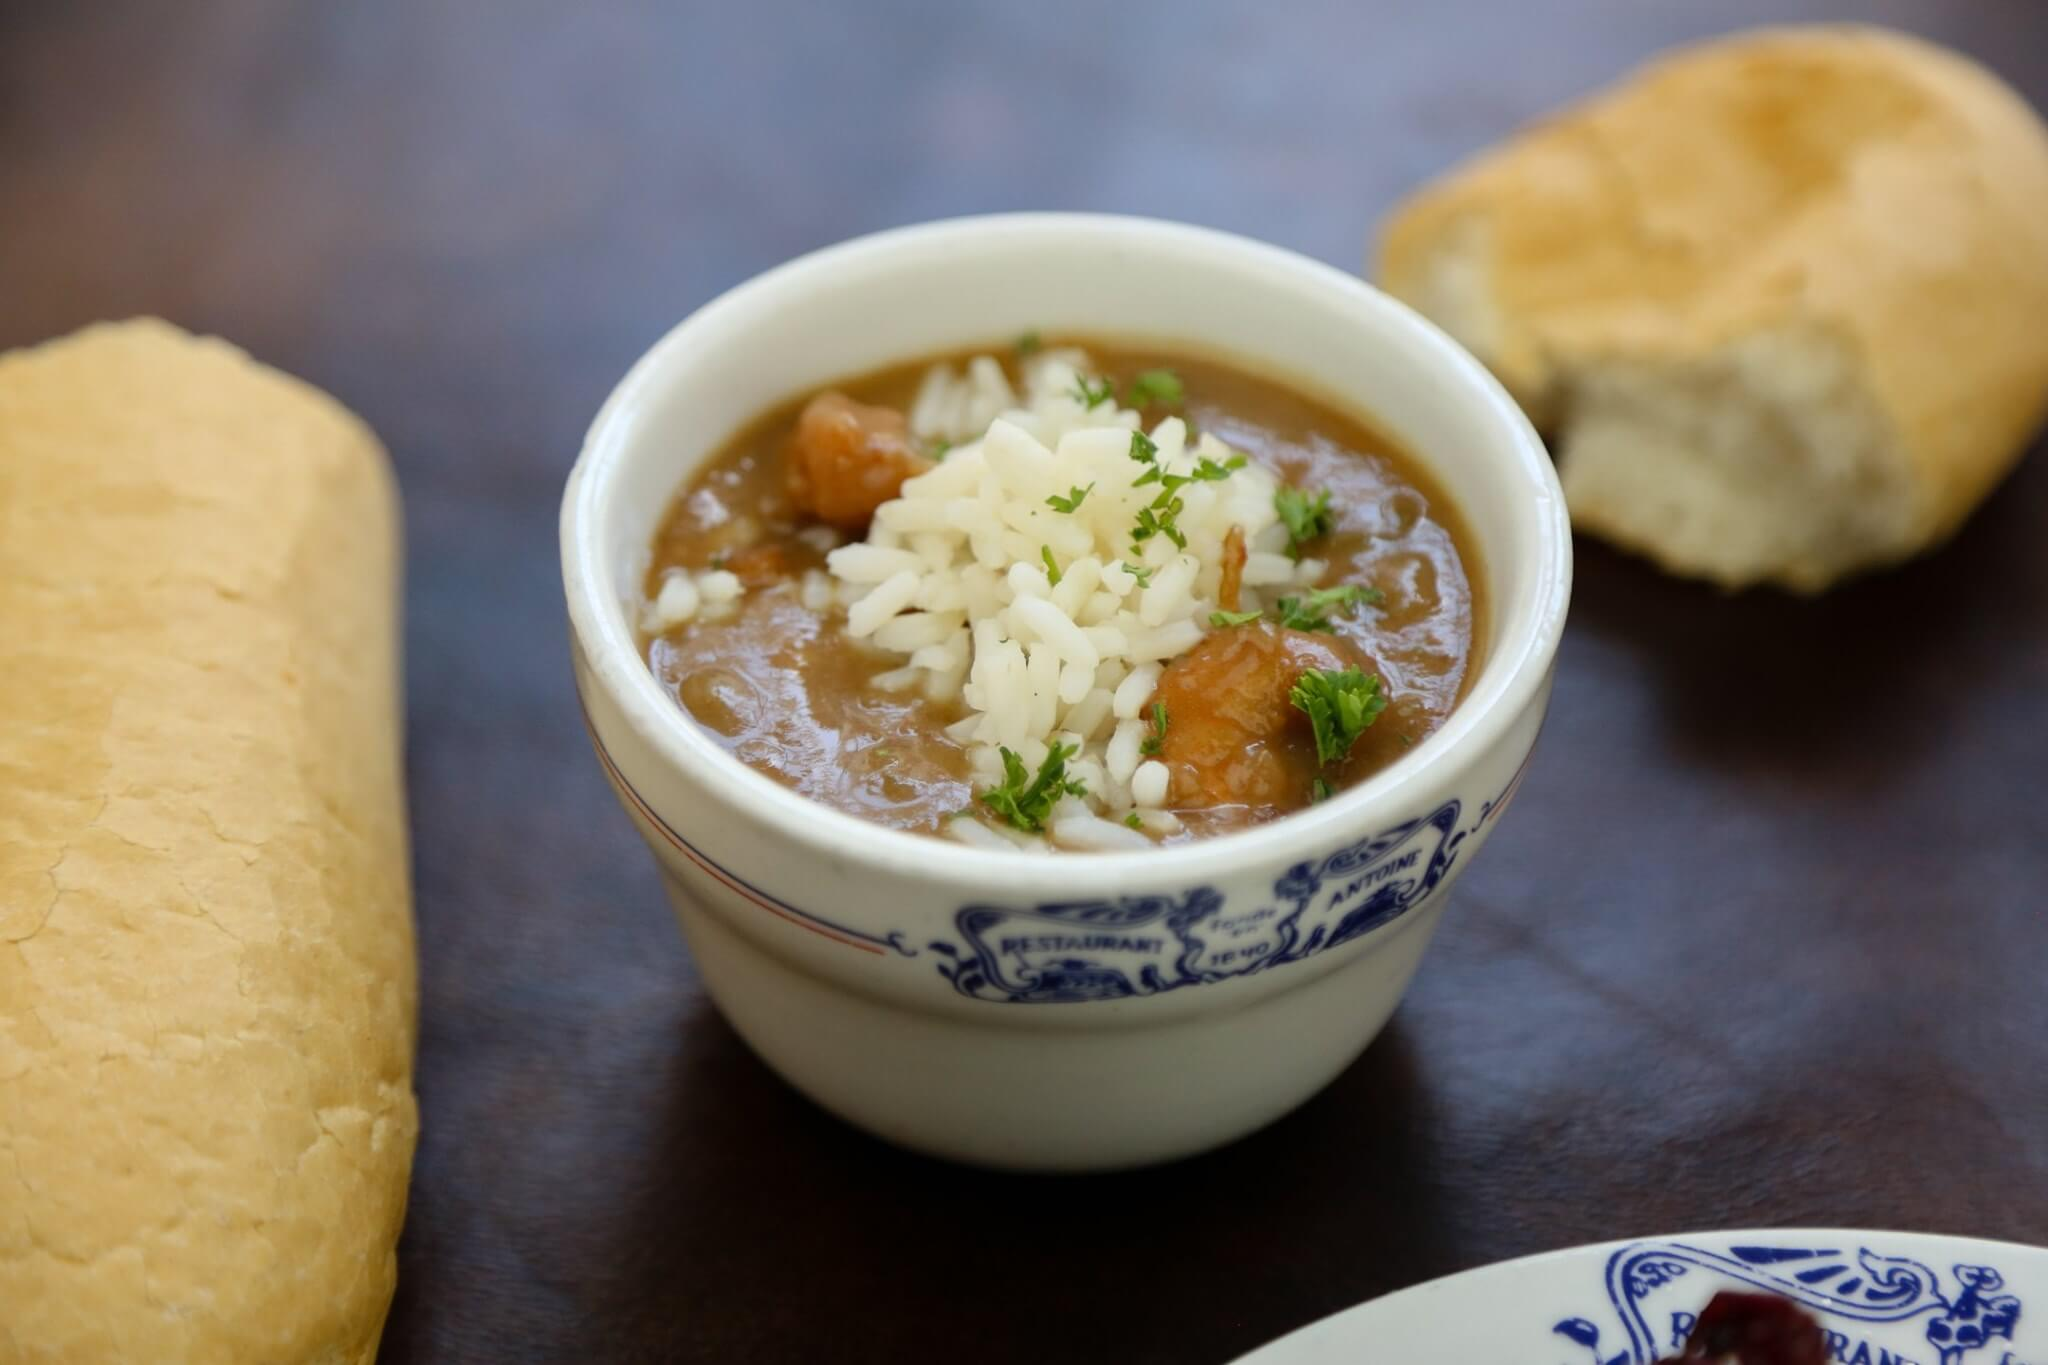 Where to Get the Best Gumbo in the French Quarter